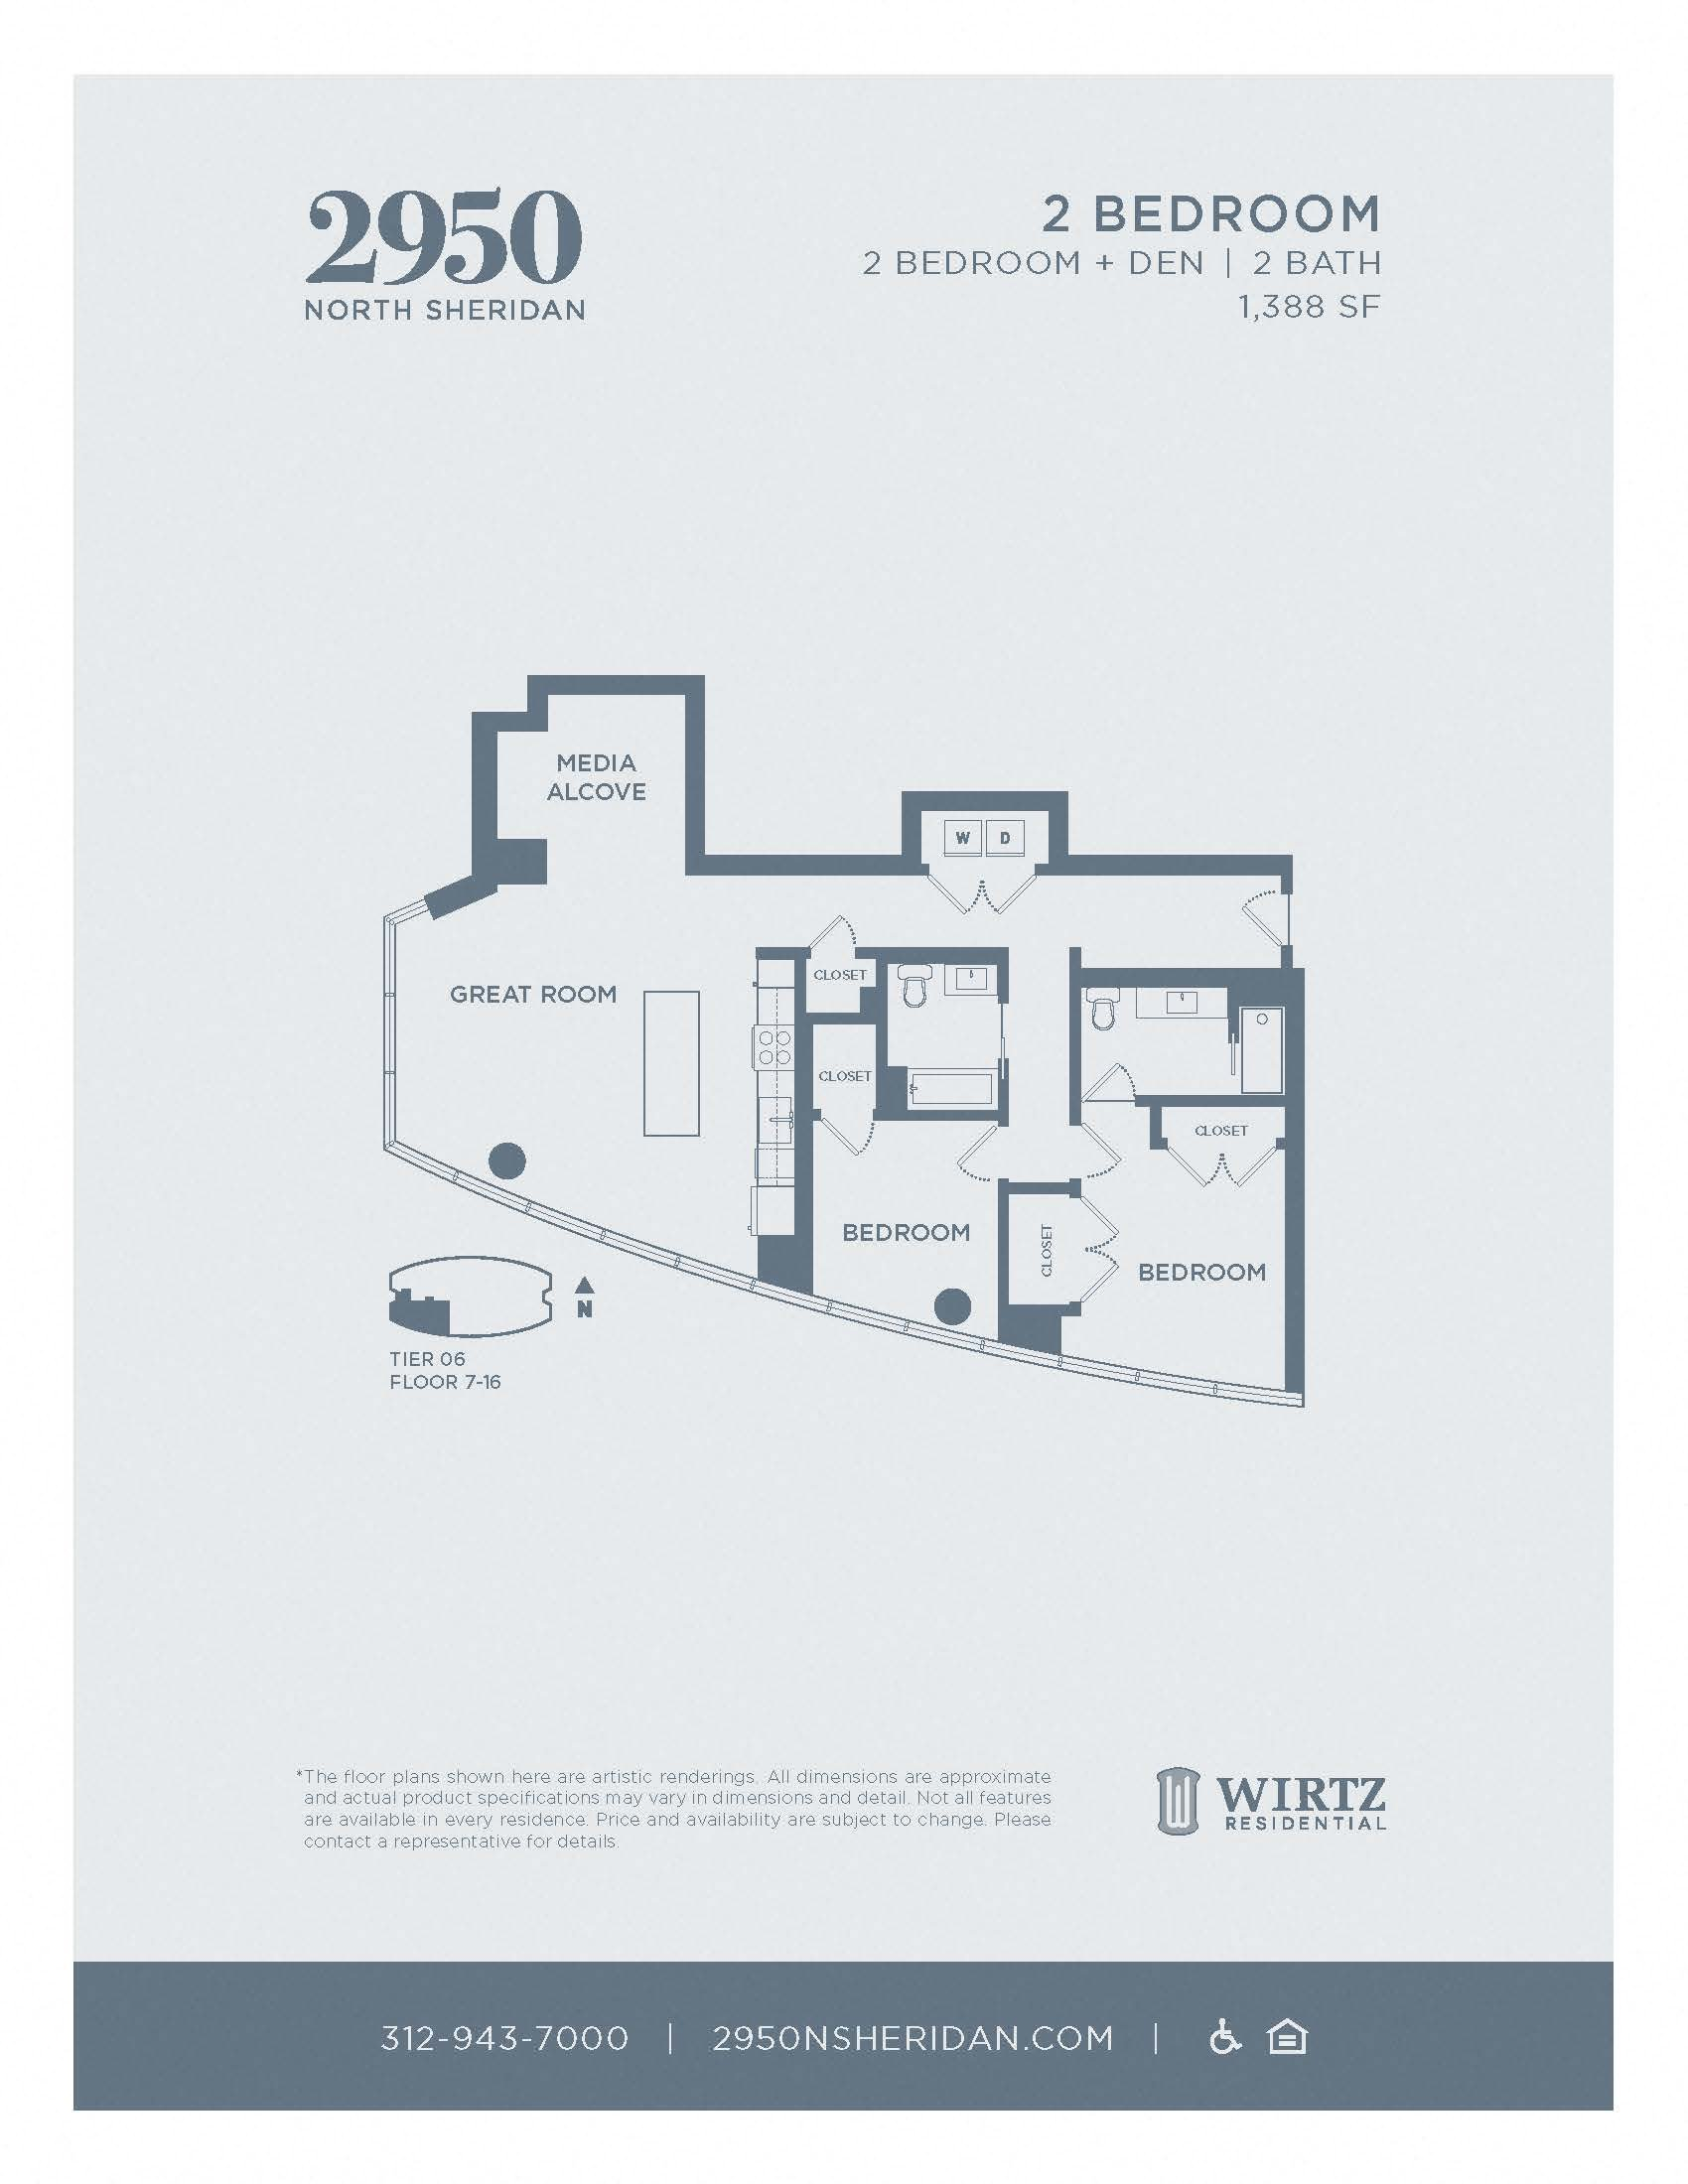 2 Bed 2 Bath + Den Tier 06 FL 7 - 16